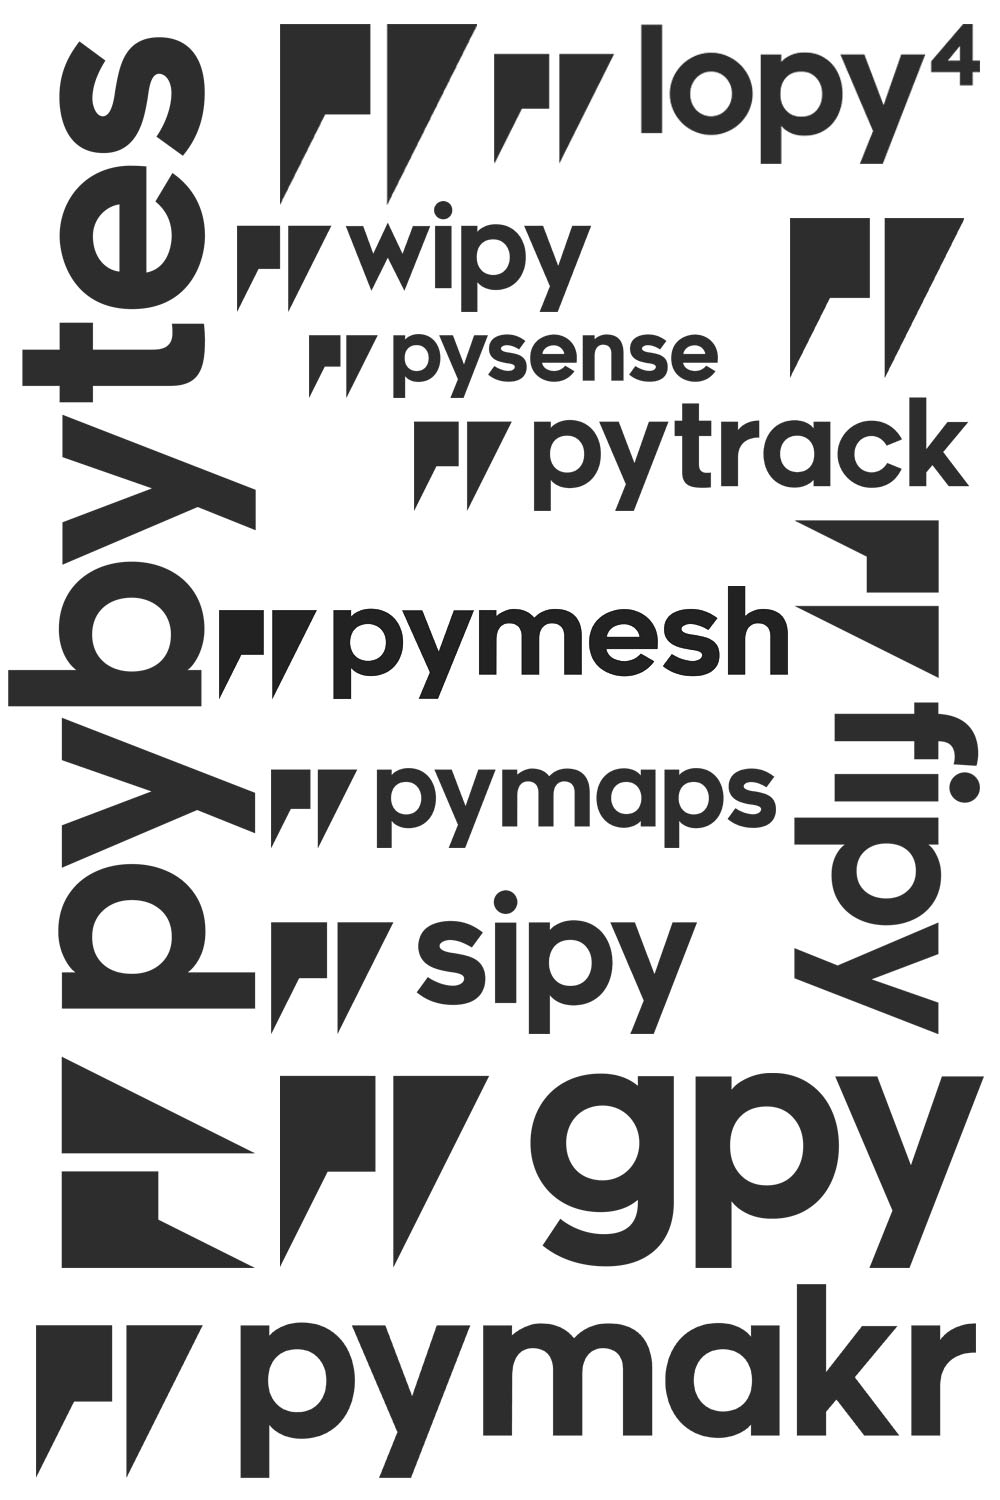 Pycom logos for internet of things hardware and software